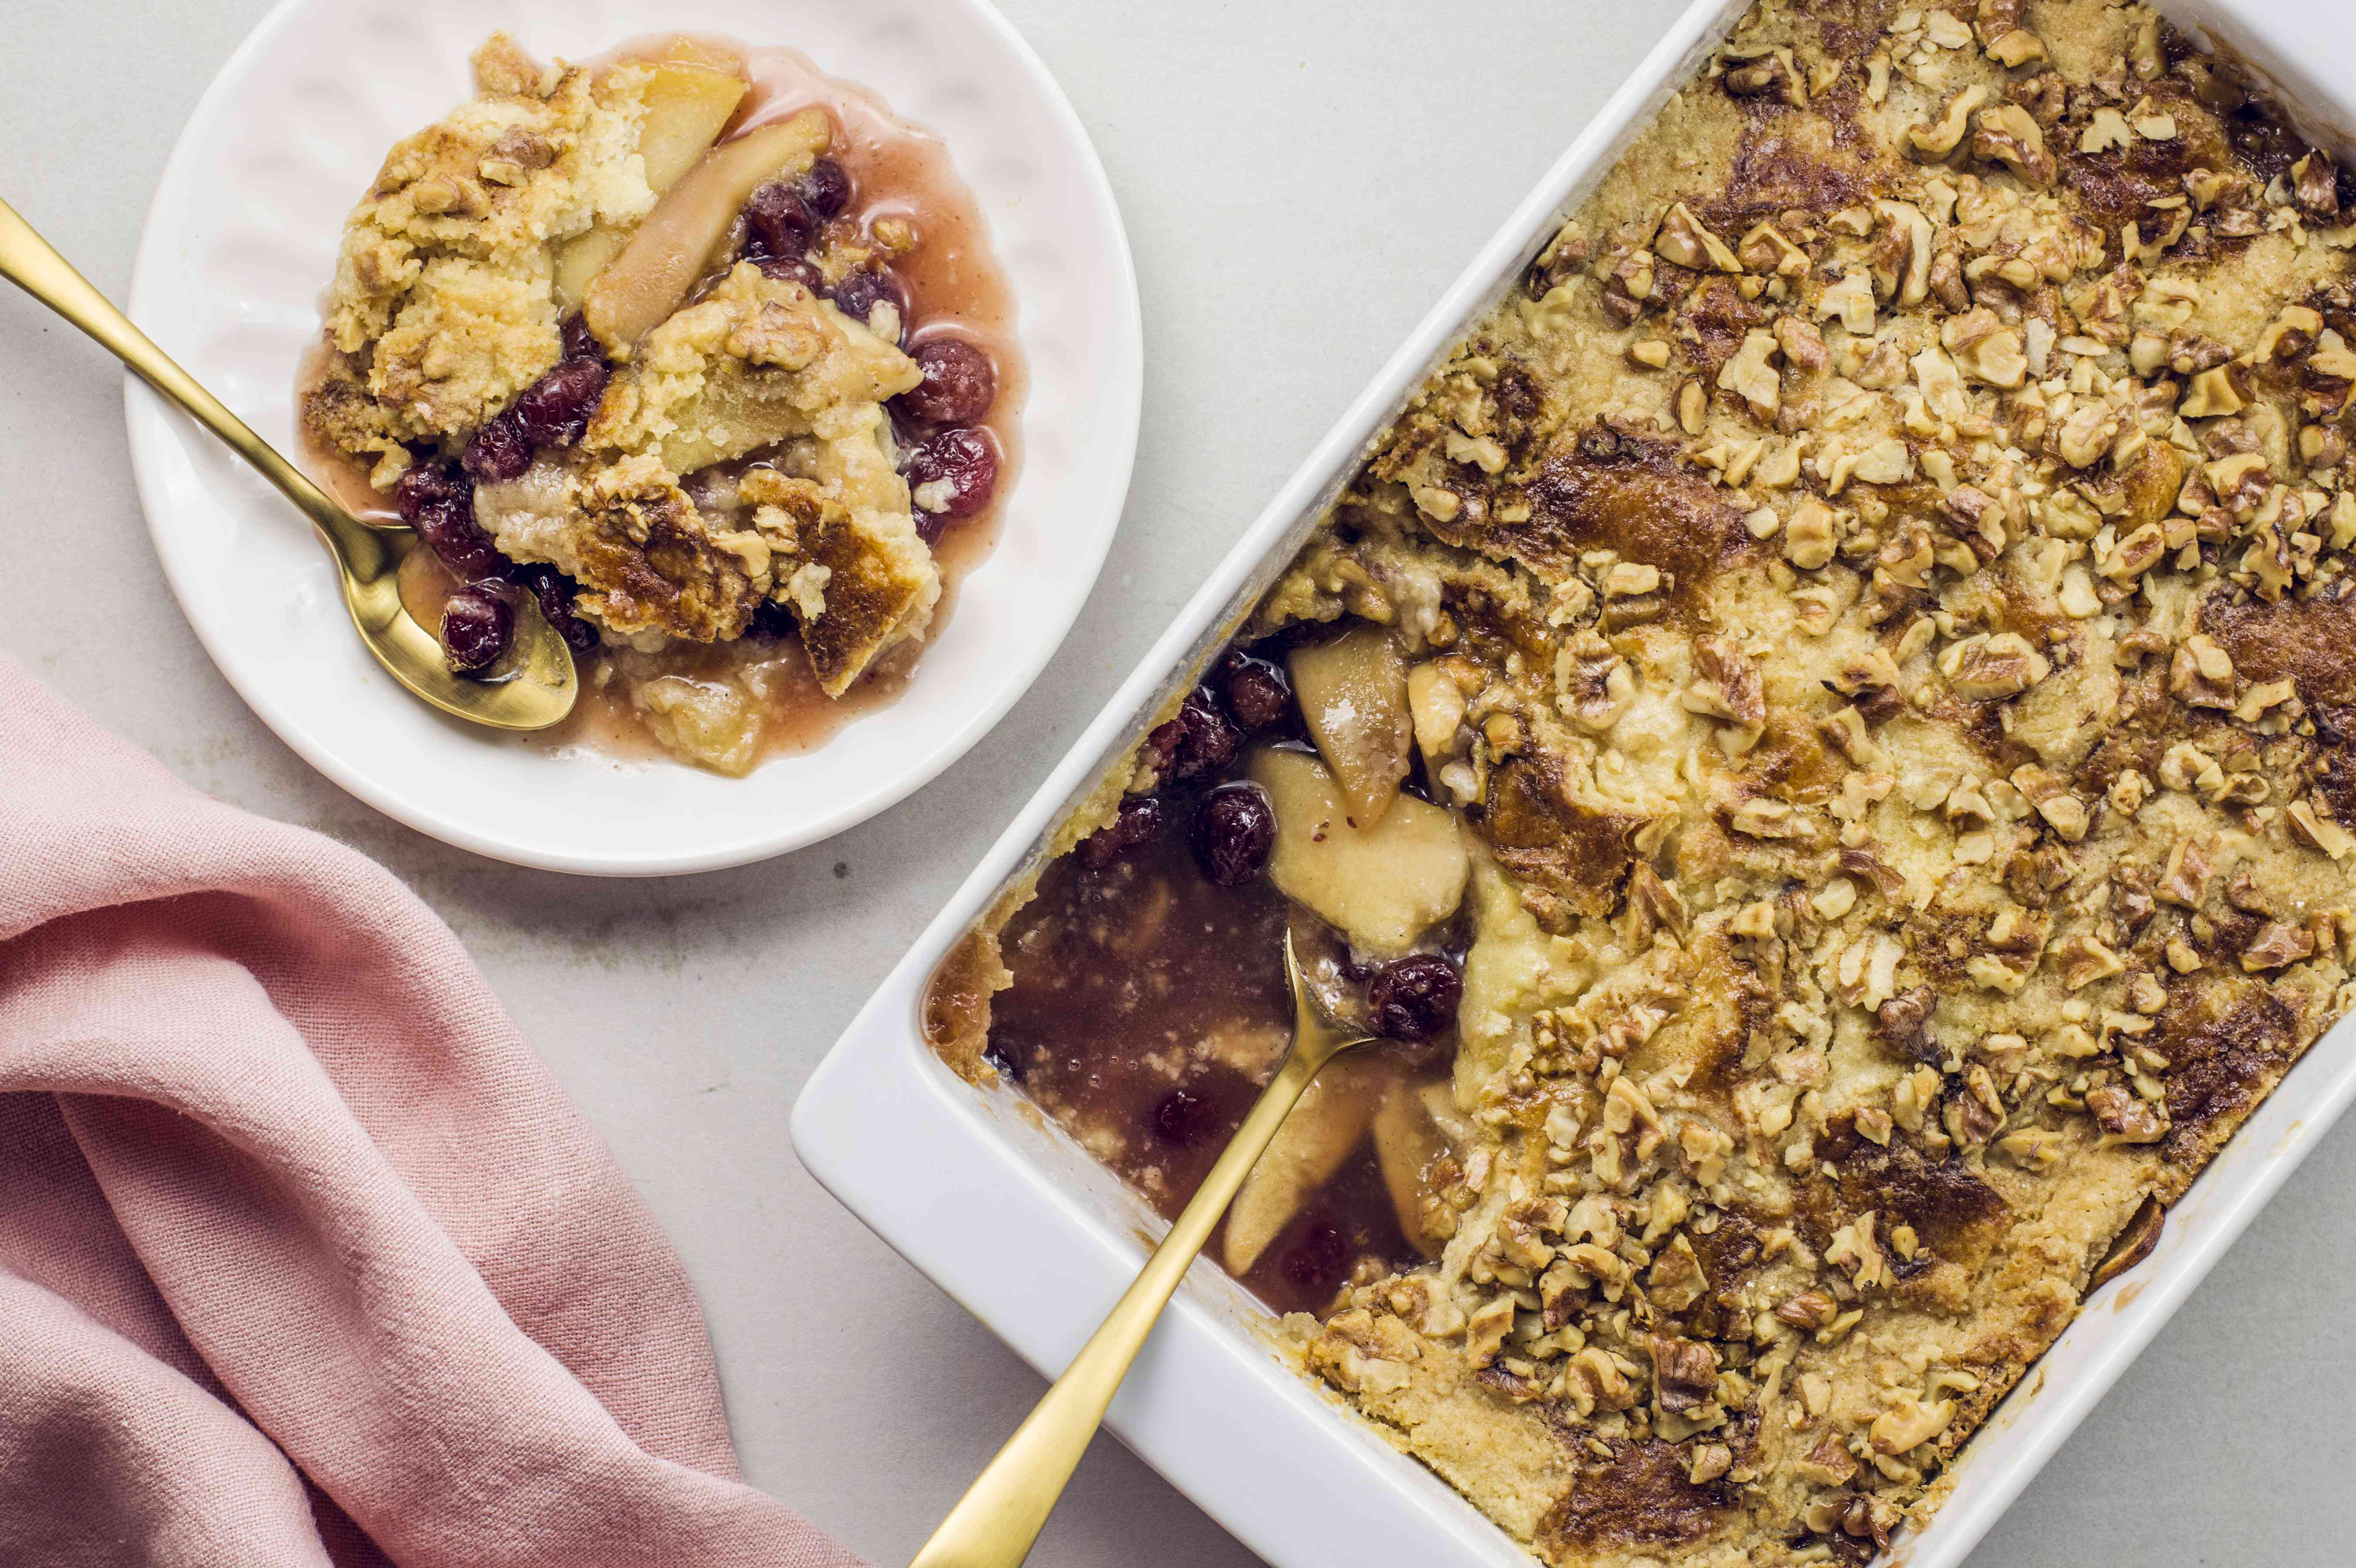 Christmas dump cake in a baking dish and on a plate with a spoon